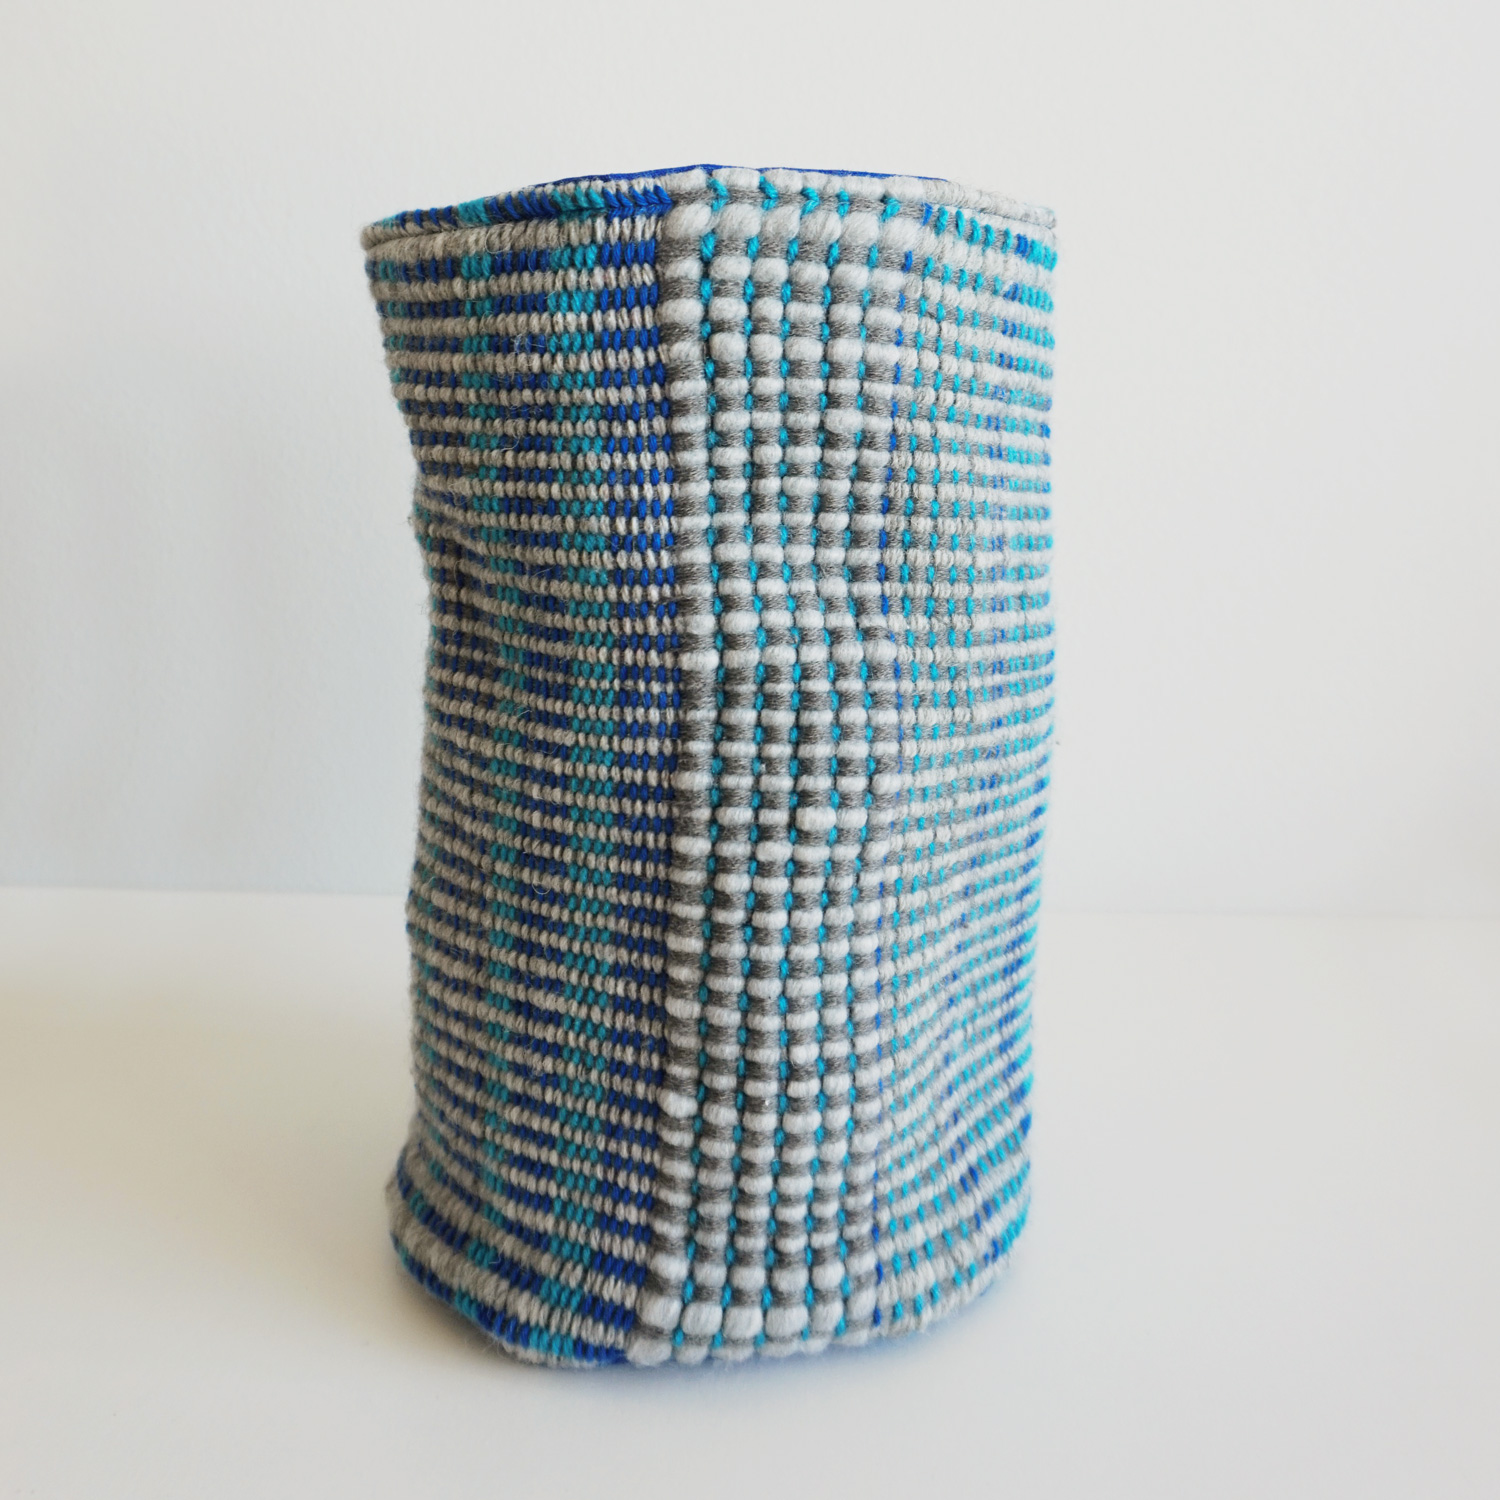 A self-standing soft storage basket with a grey-blue woven texture - perfect for your yarn stash or your collection of woolly socks and house slippers.